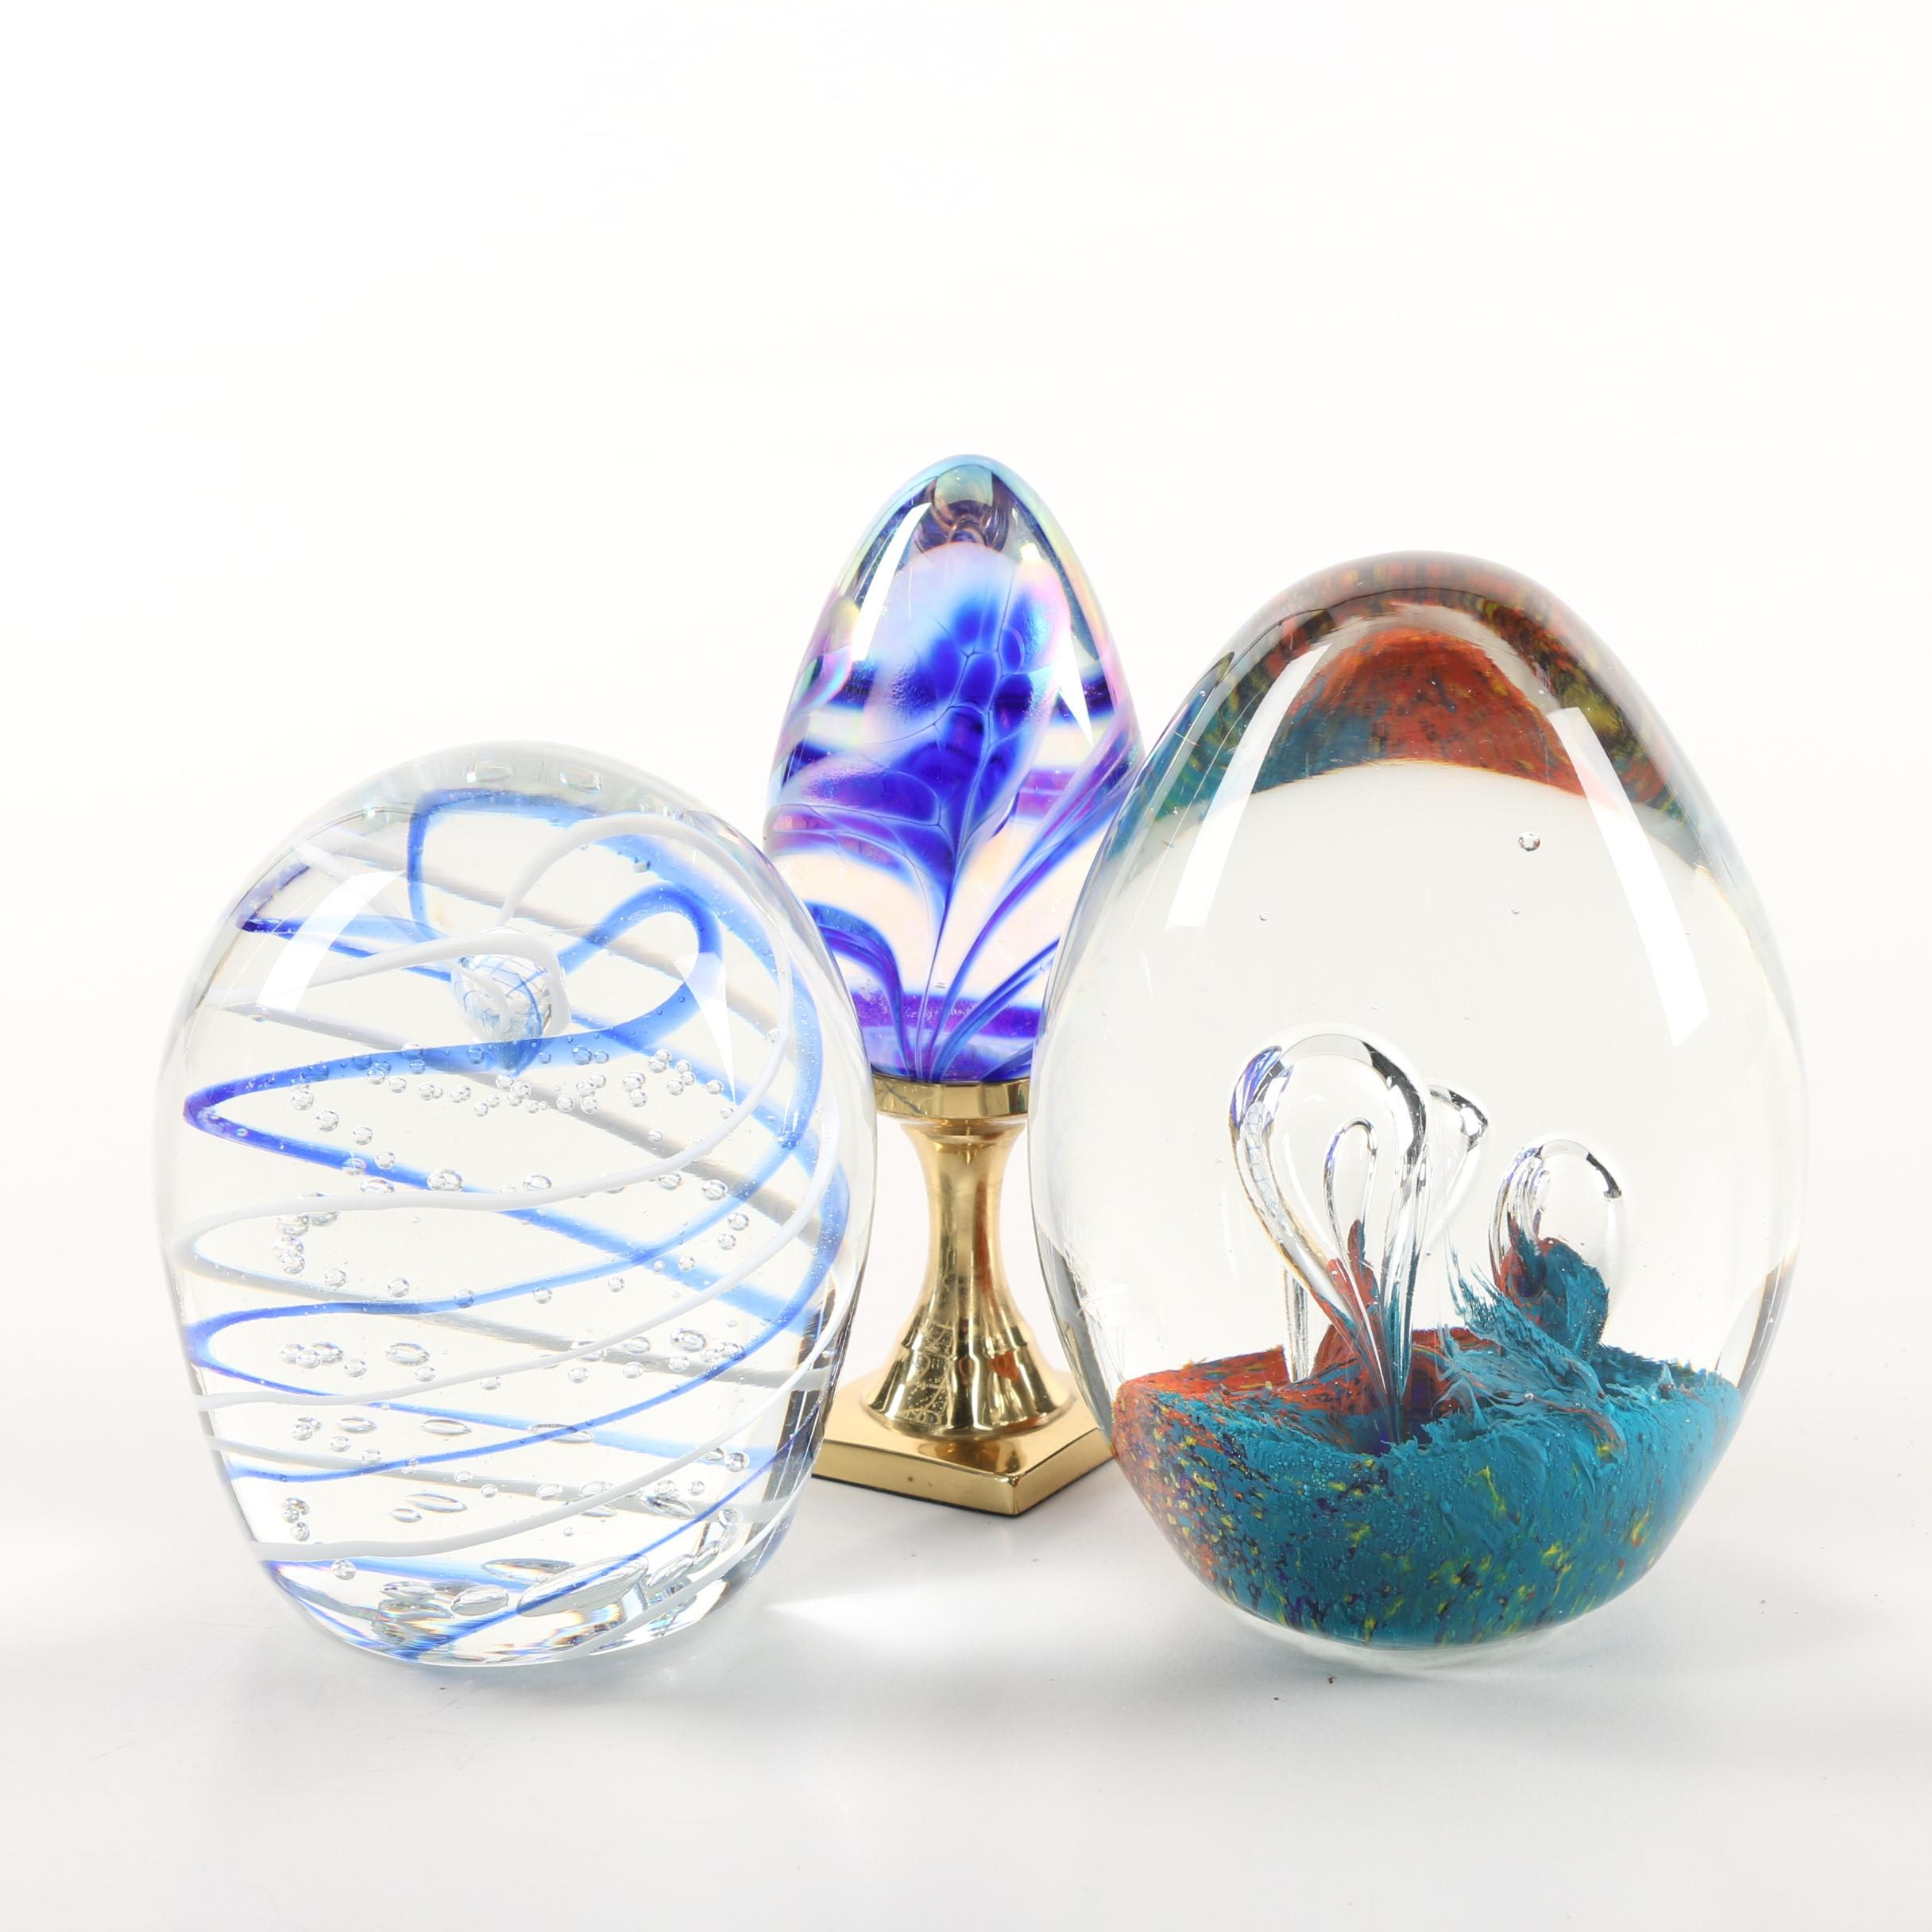 Art Glass Paperweights Including Gentile Glass and Glass Eye Studio